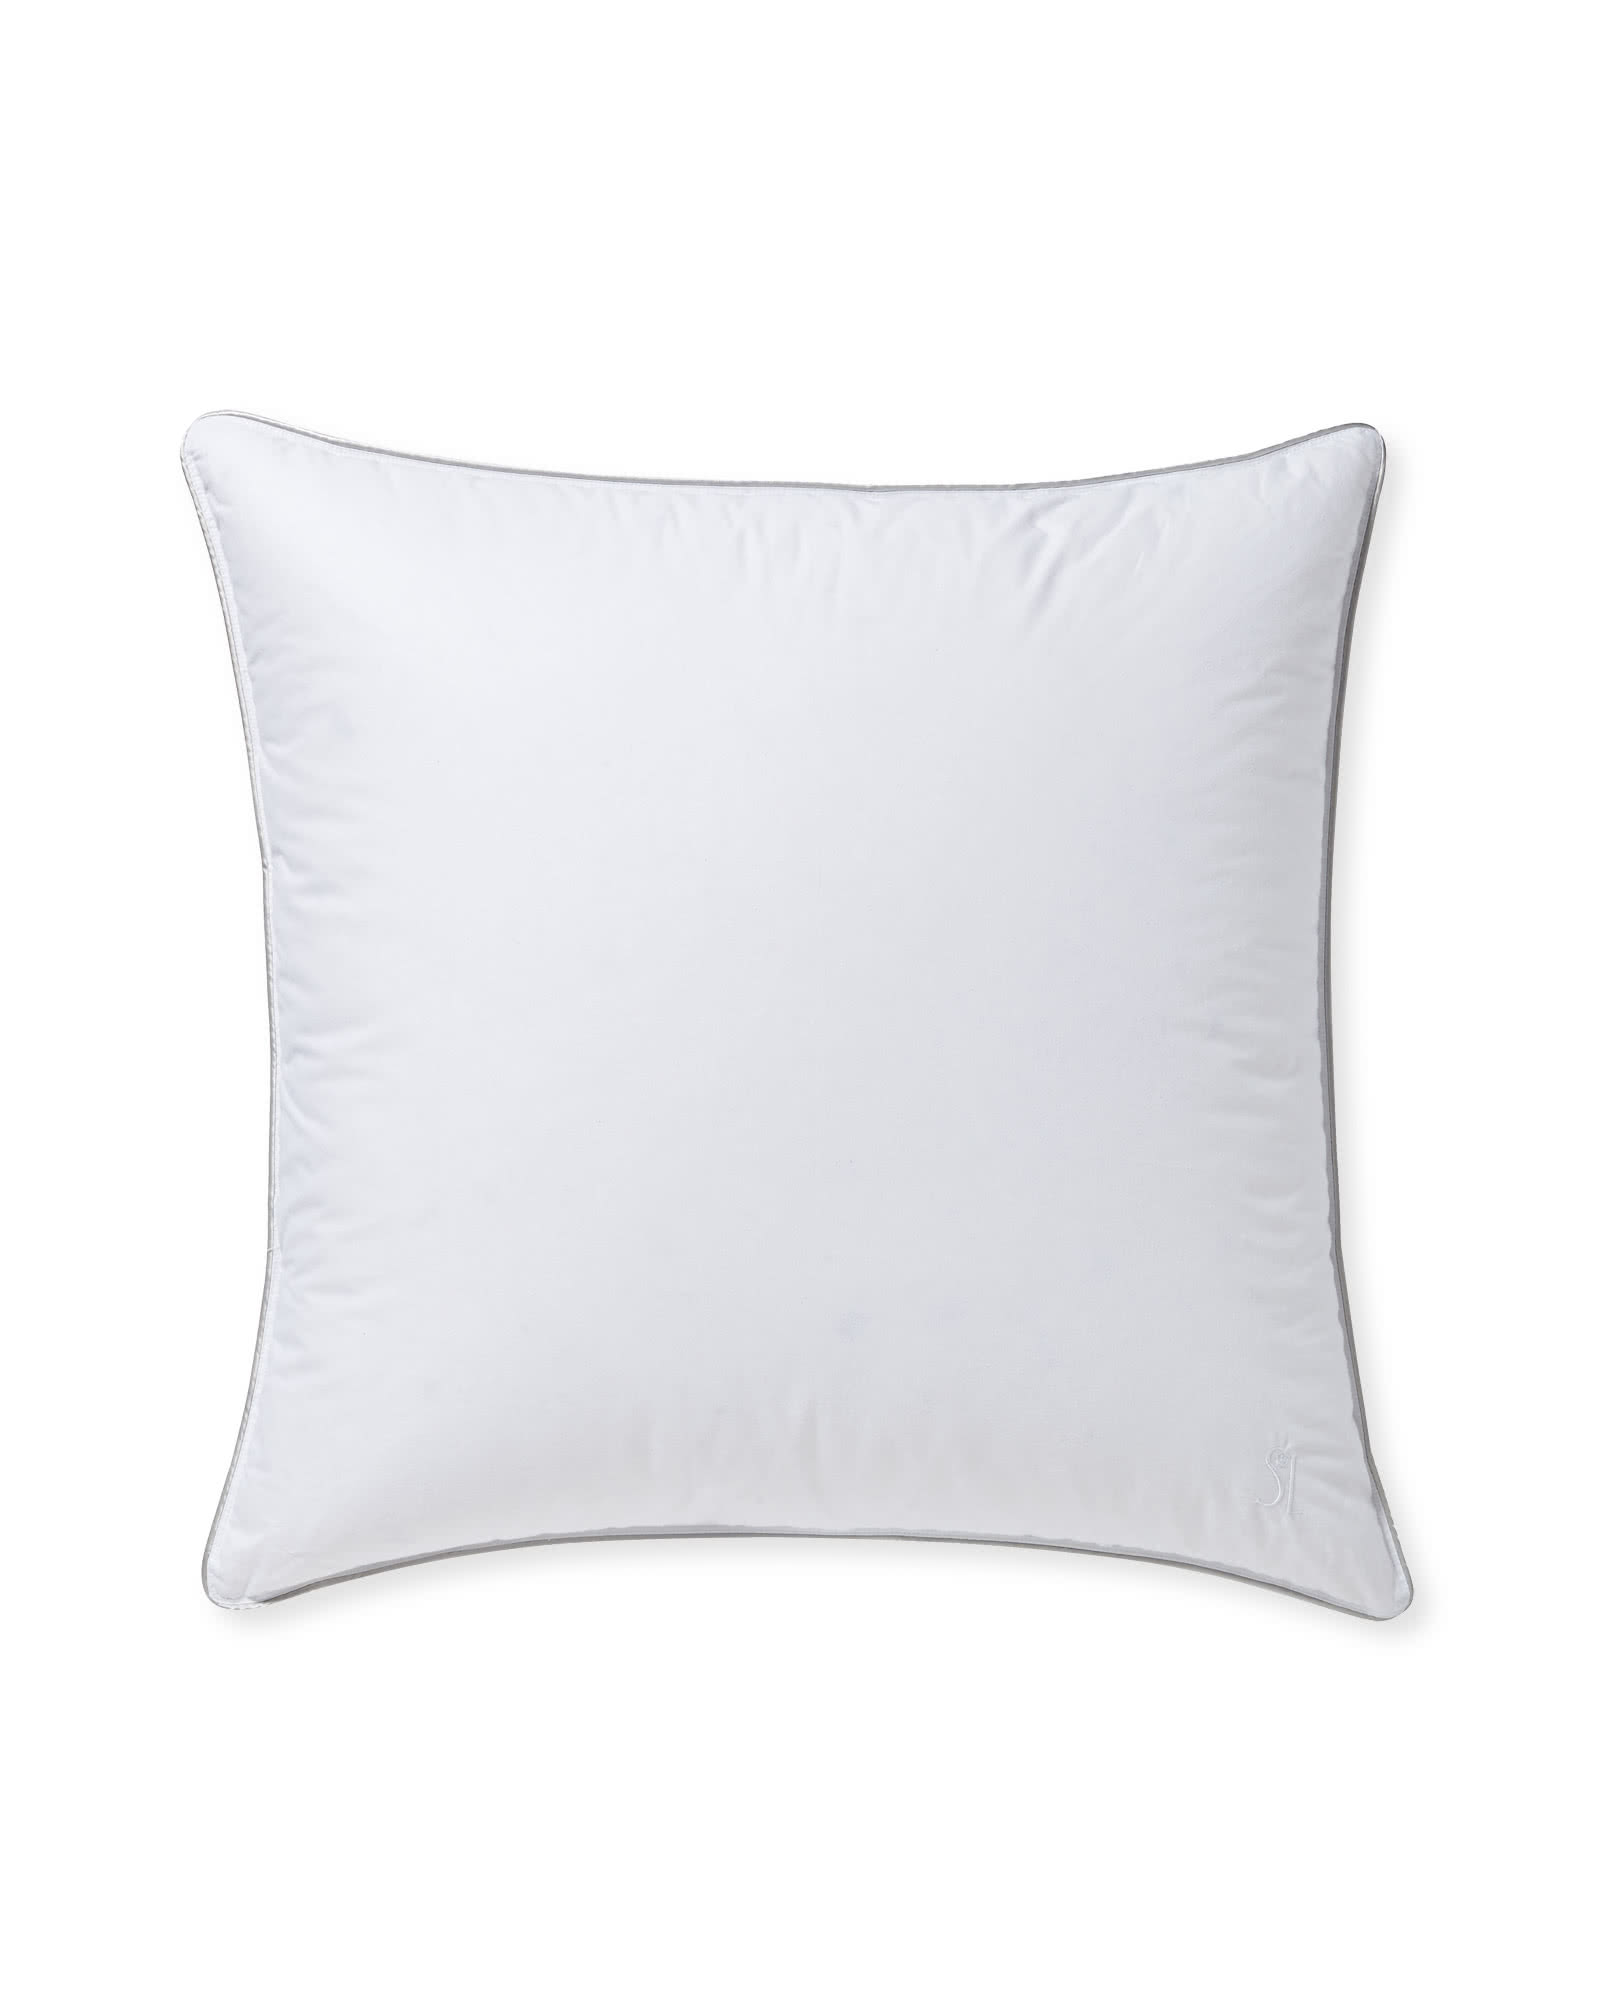 Goose Down Euro Pillow Insert,